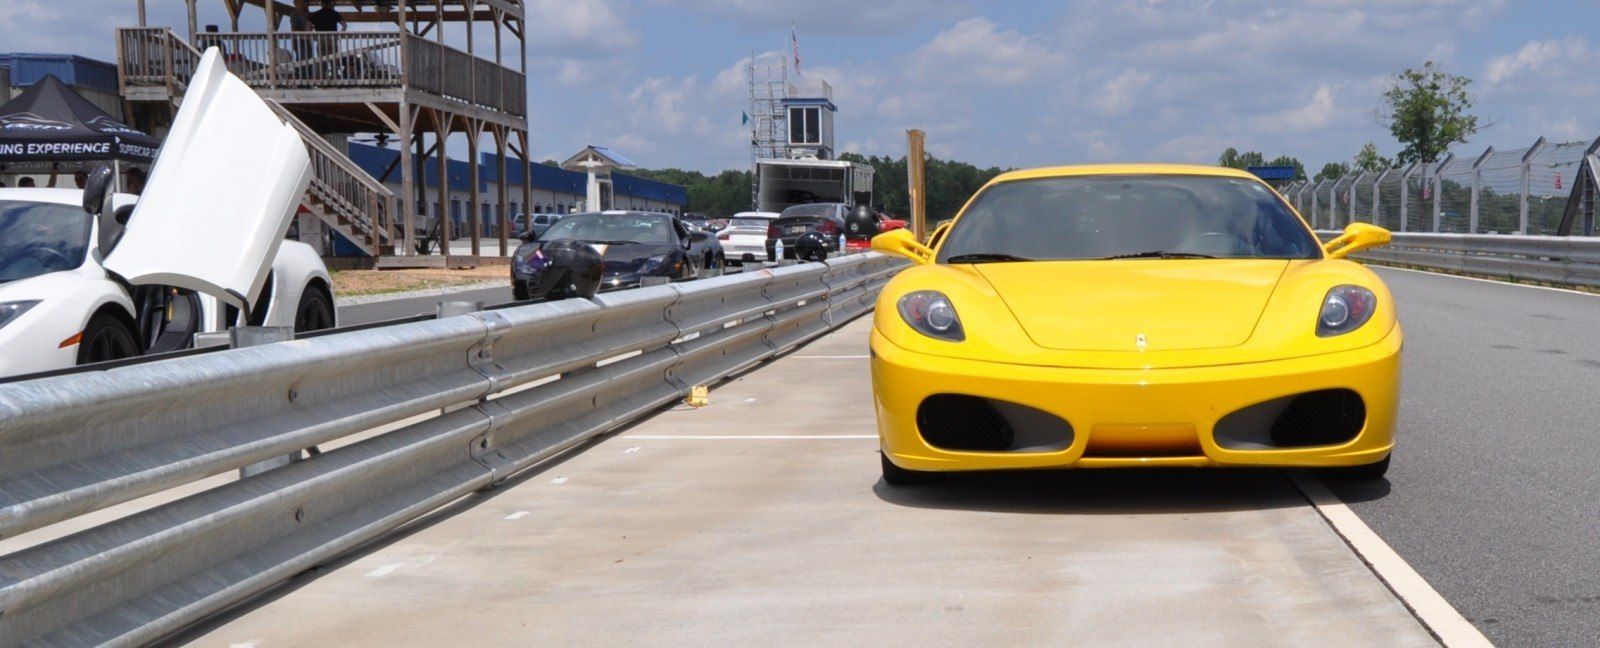 Beating the Supercar Paradox - 2007 Ferrari F430 at Velocity Motorsports Supercar Track Drive 34